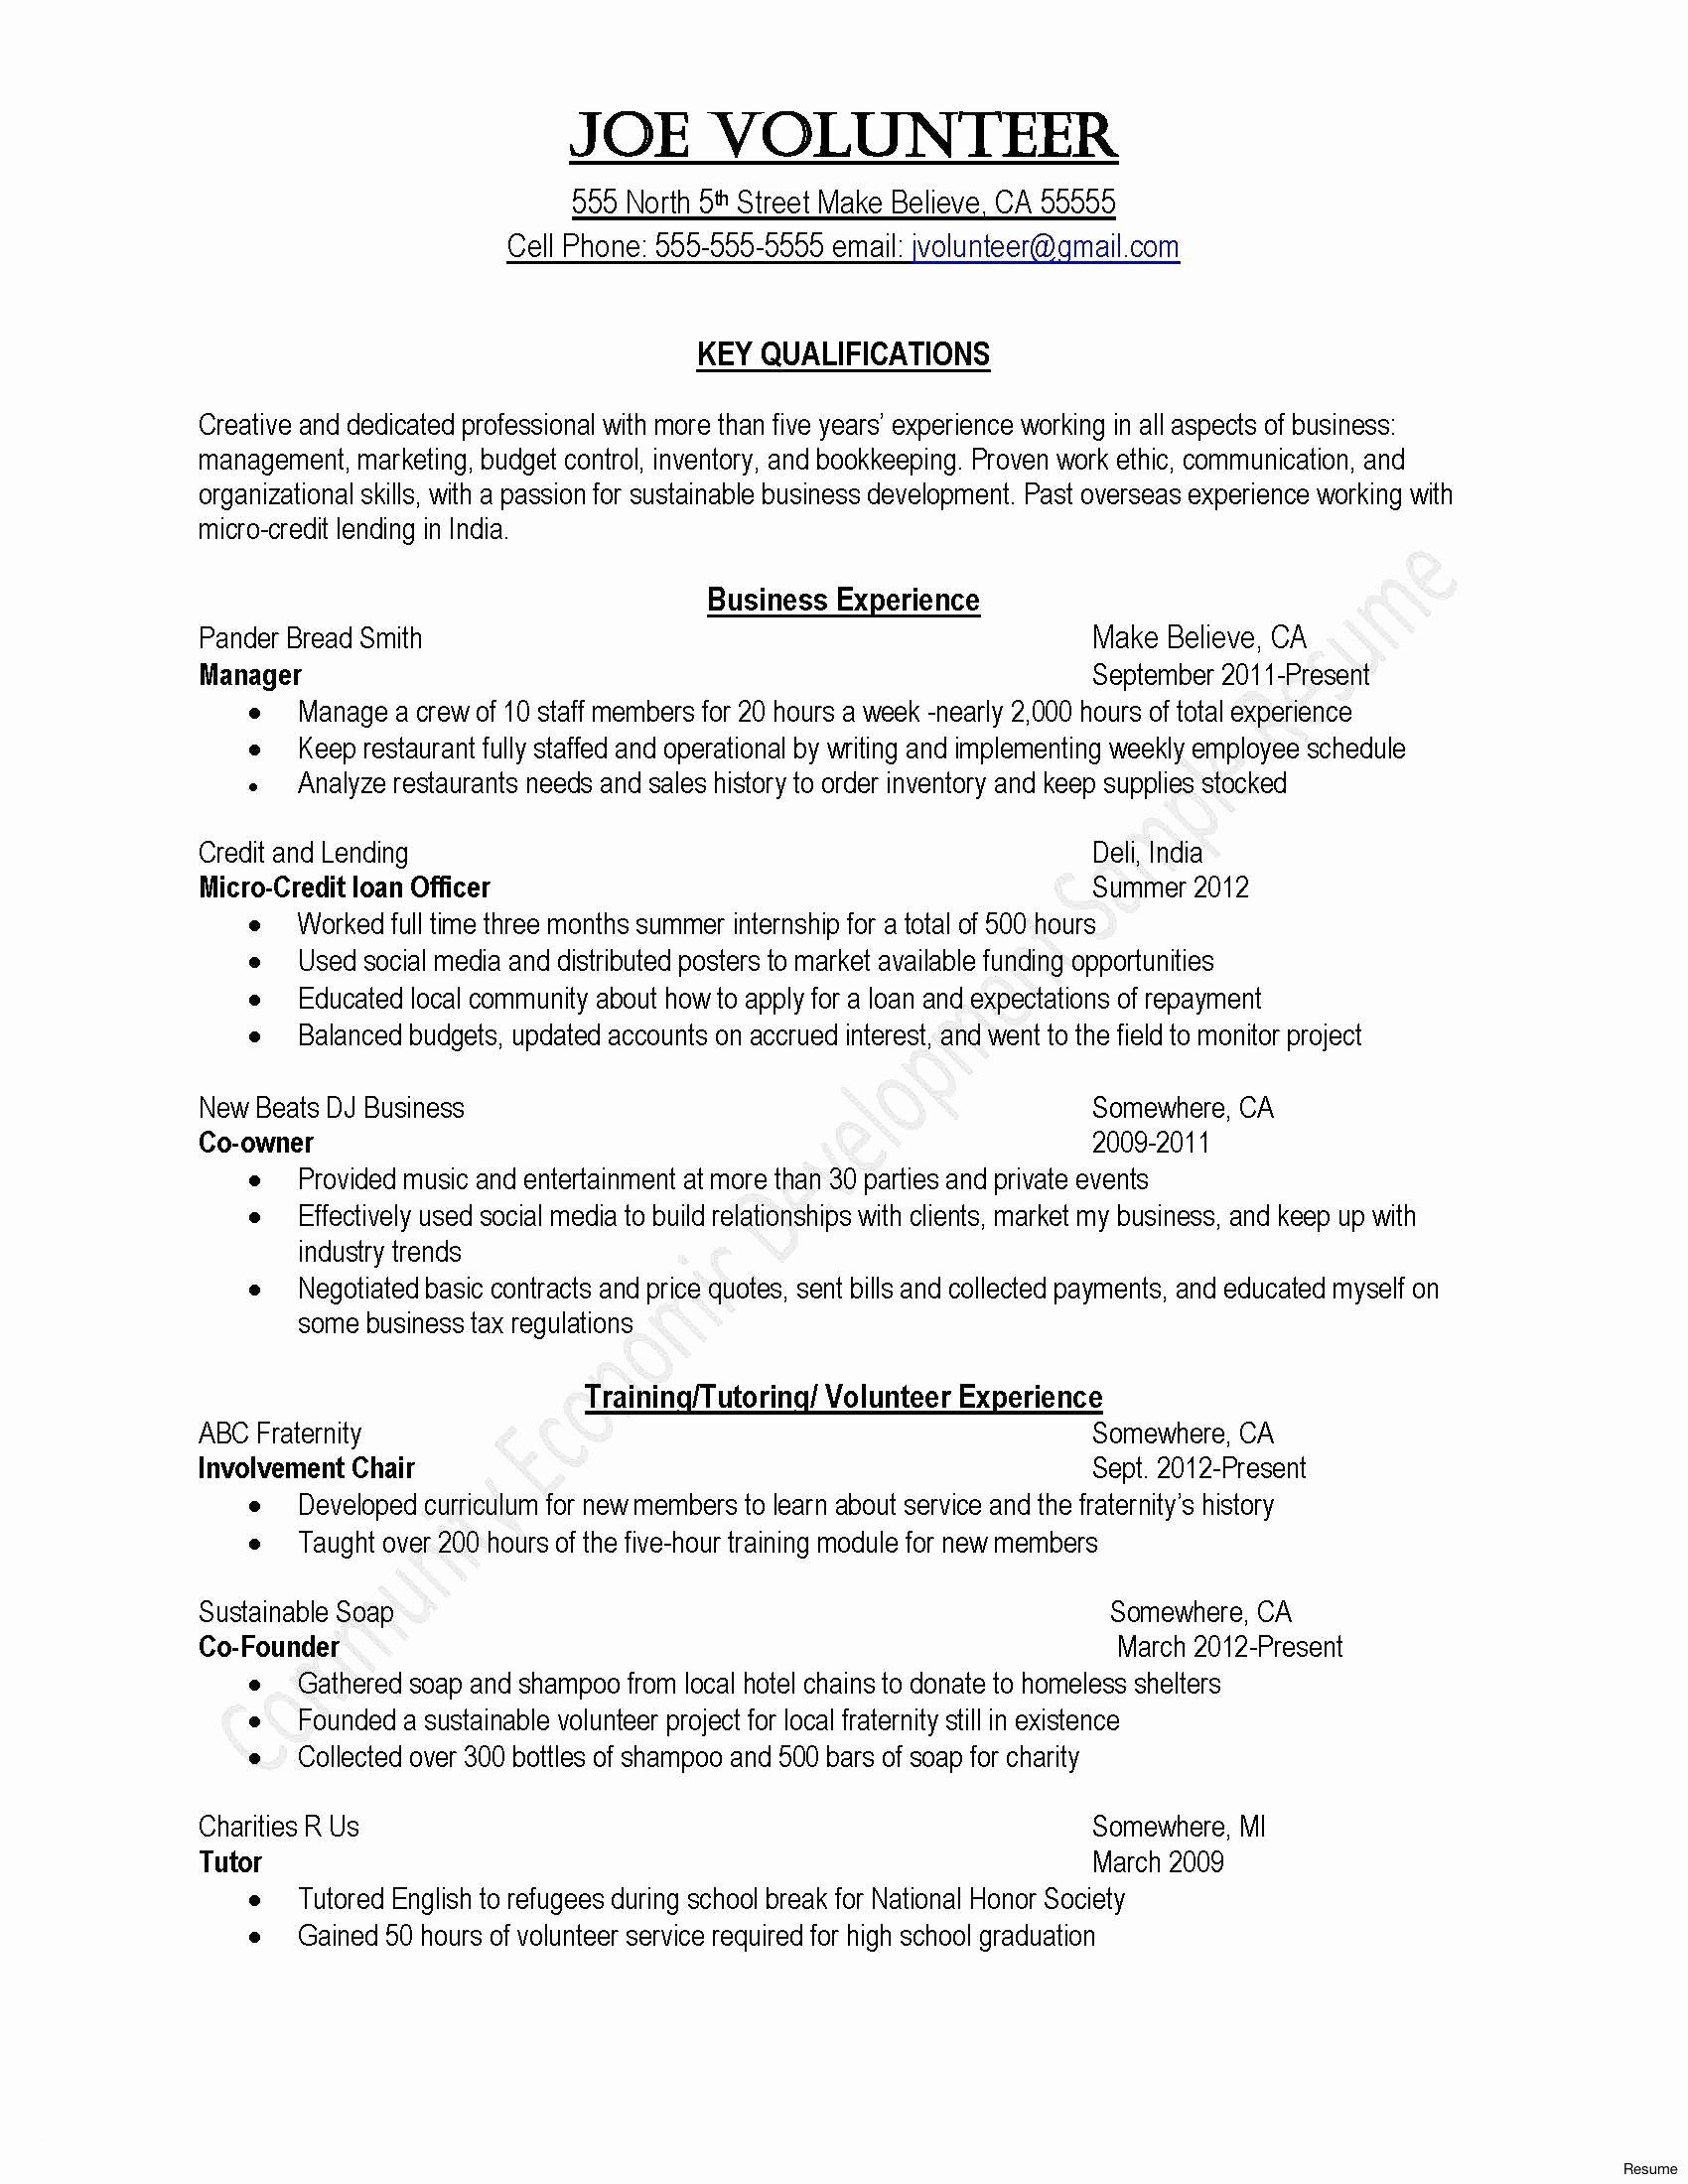 71 Cool Photos Of Curriculum Vitae Examples For Accounting Students Check More At Https Www Ourpetscrawley Com 71 Cool Photos Of Curriculum Vitae Examples For